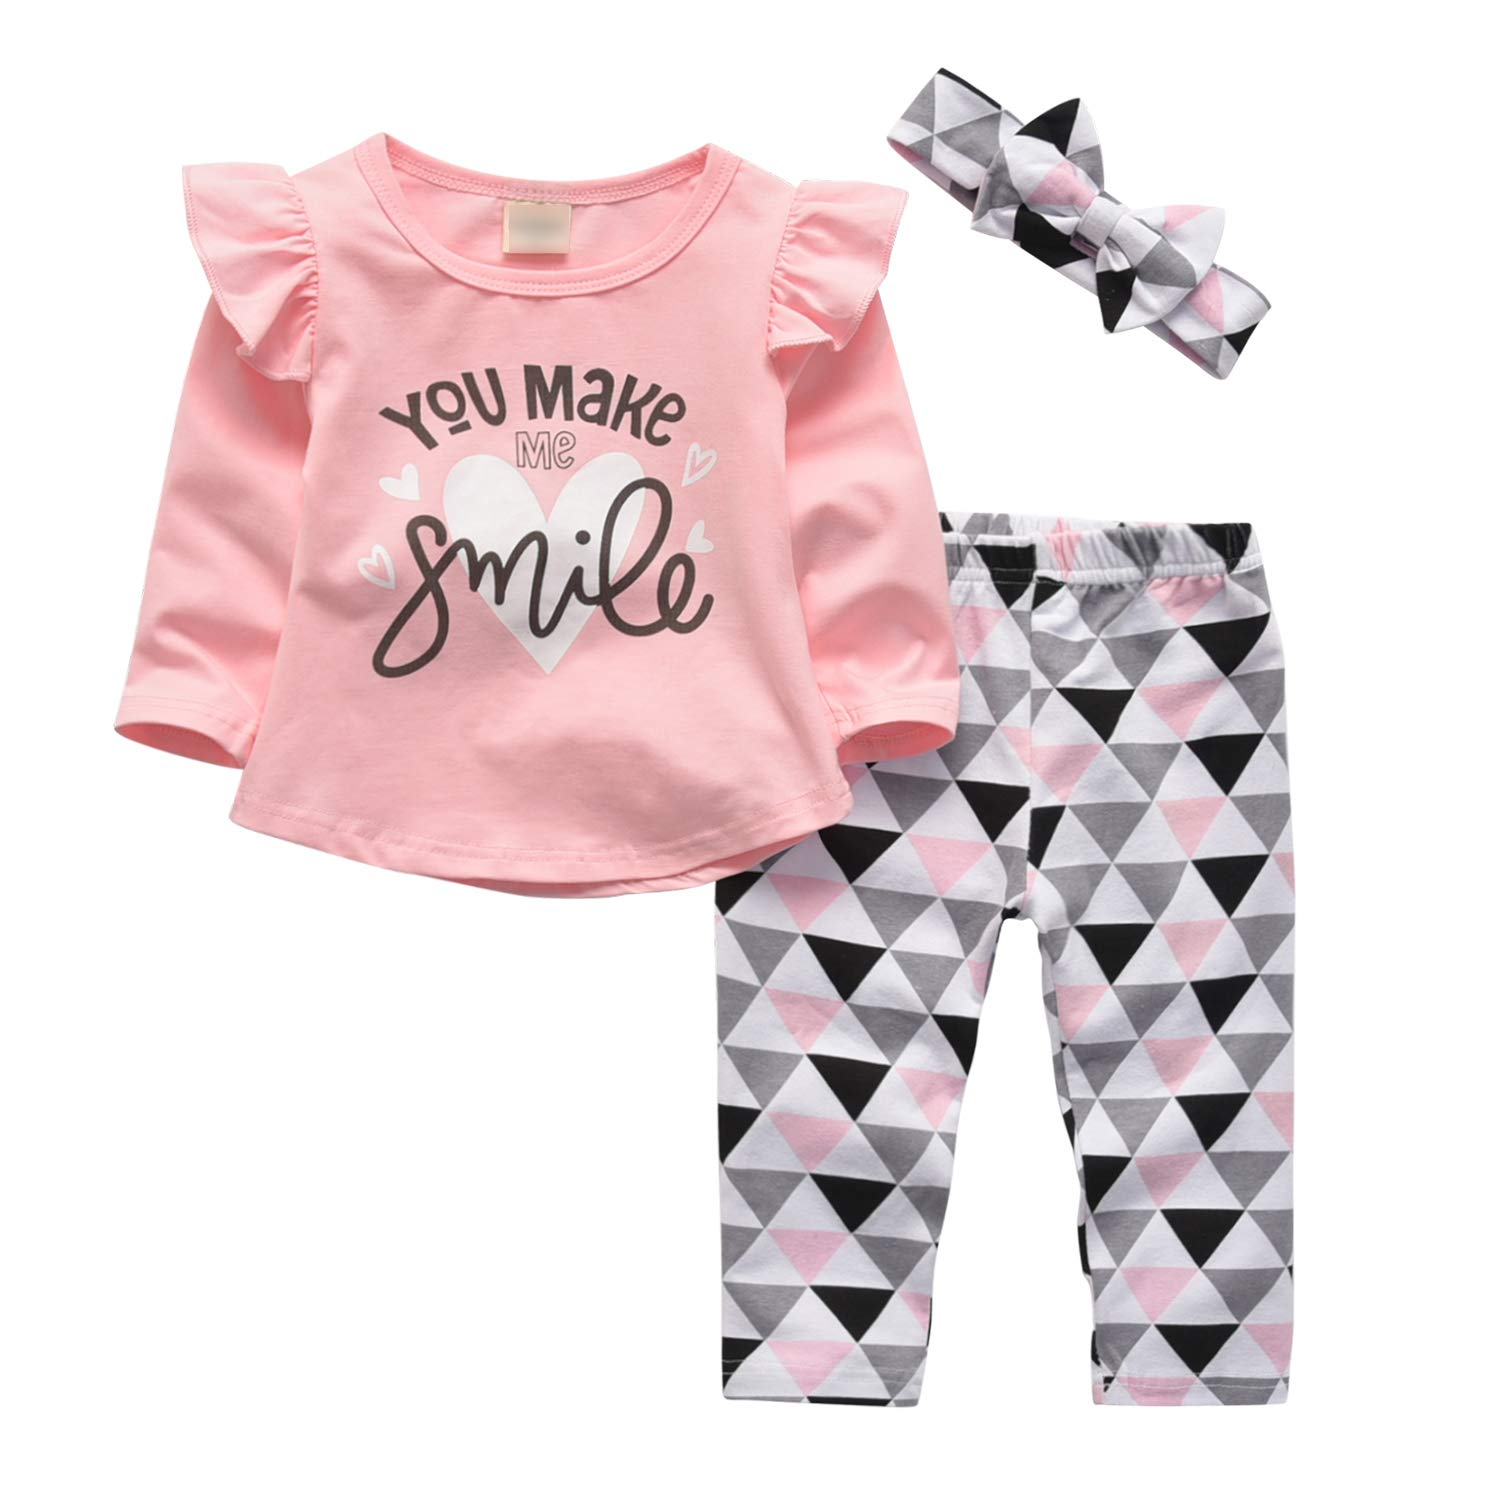 3 Pcs Baby Girl Clothes Long Sleeve Letter You Make Me Smile Tops Geometric Pants and Headband Outfit Set